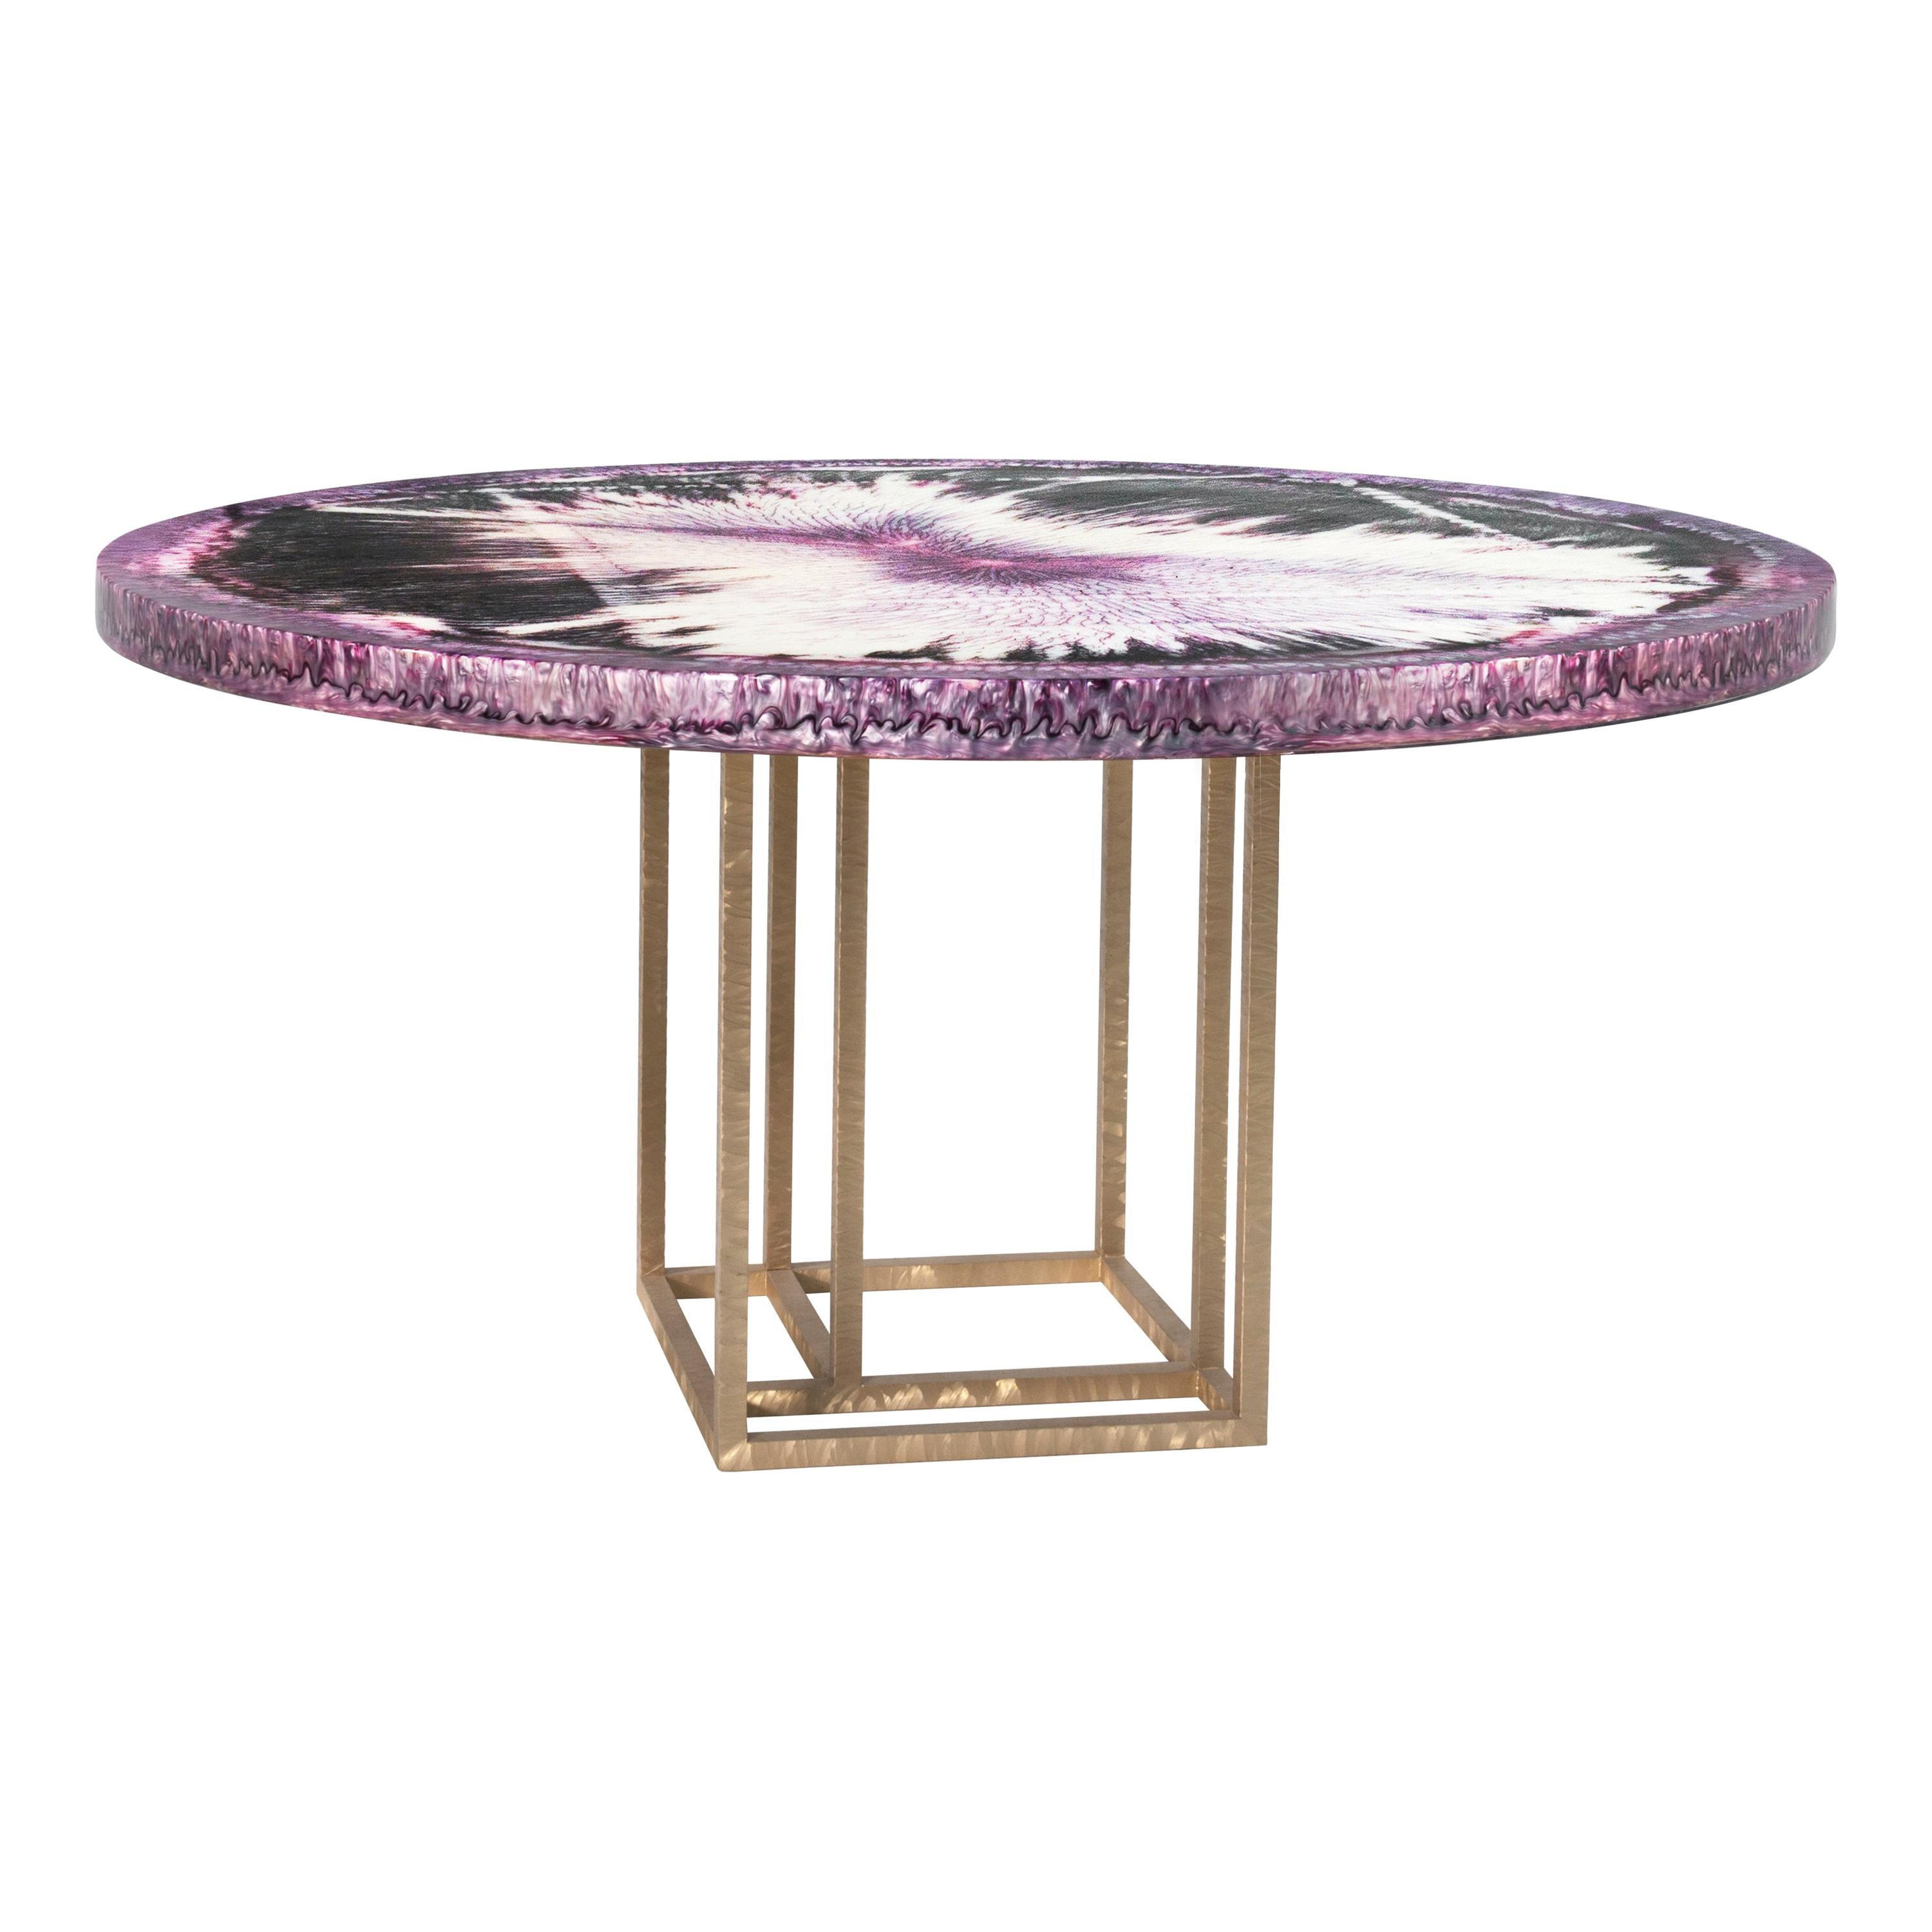 Contemporary Table by Hessentia with Artistic Resin top and Brass Base, Violet